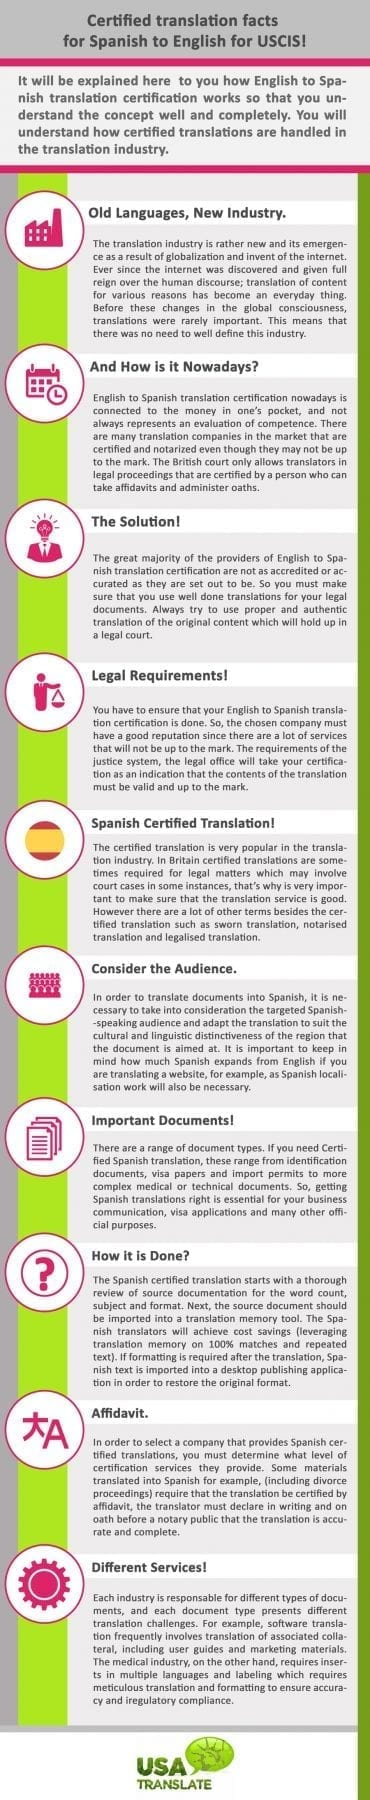 Facts About Certified Translation From Spanish To English For Uscis